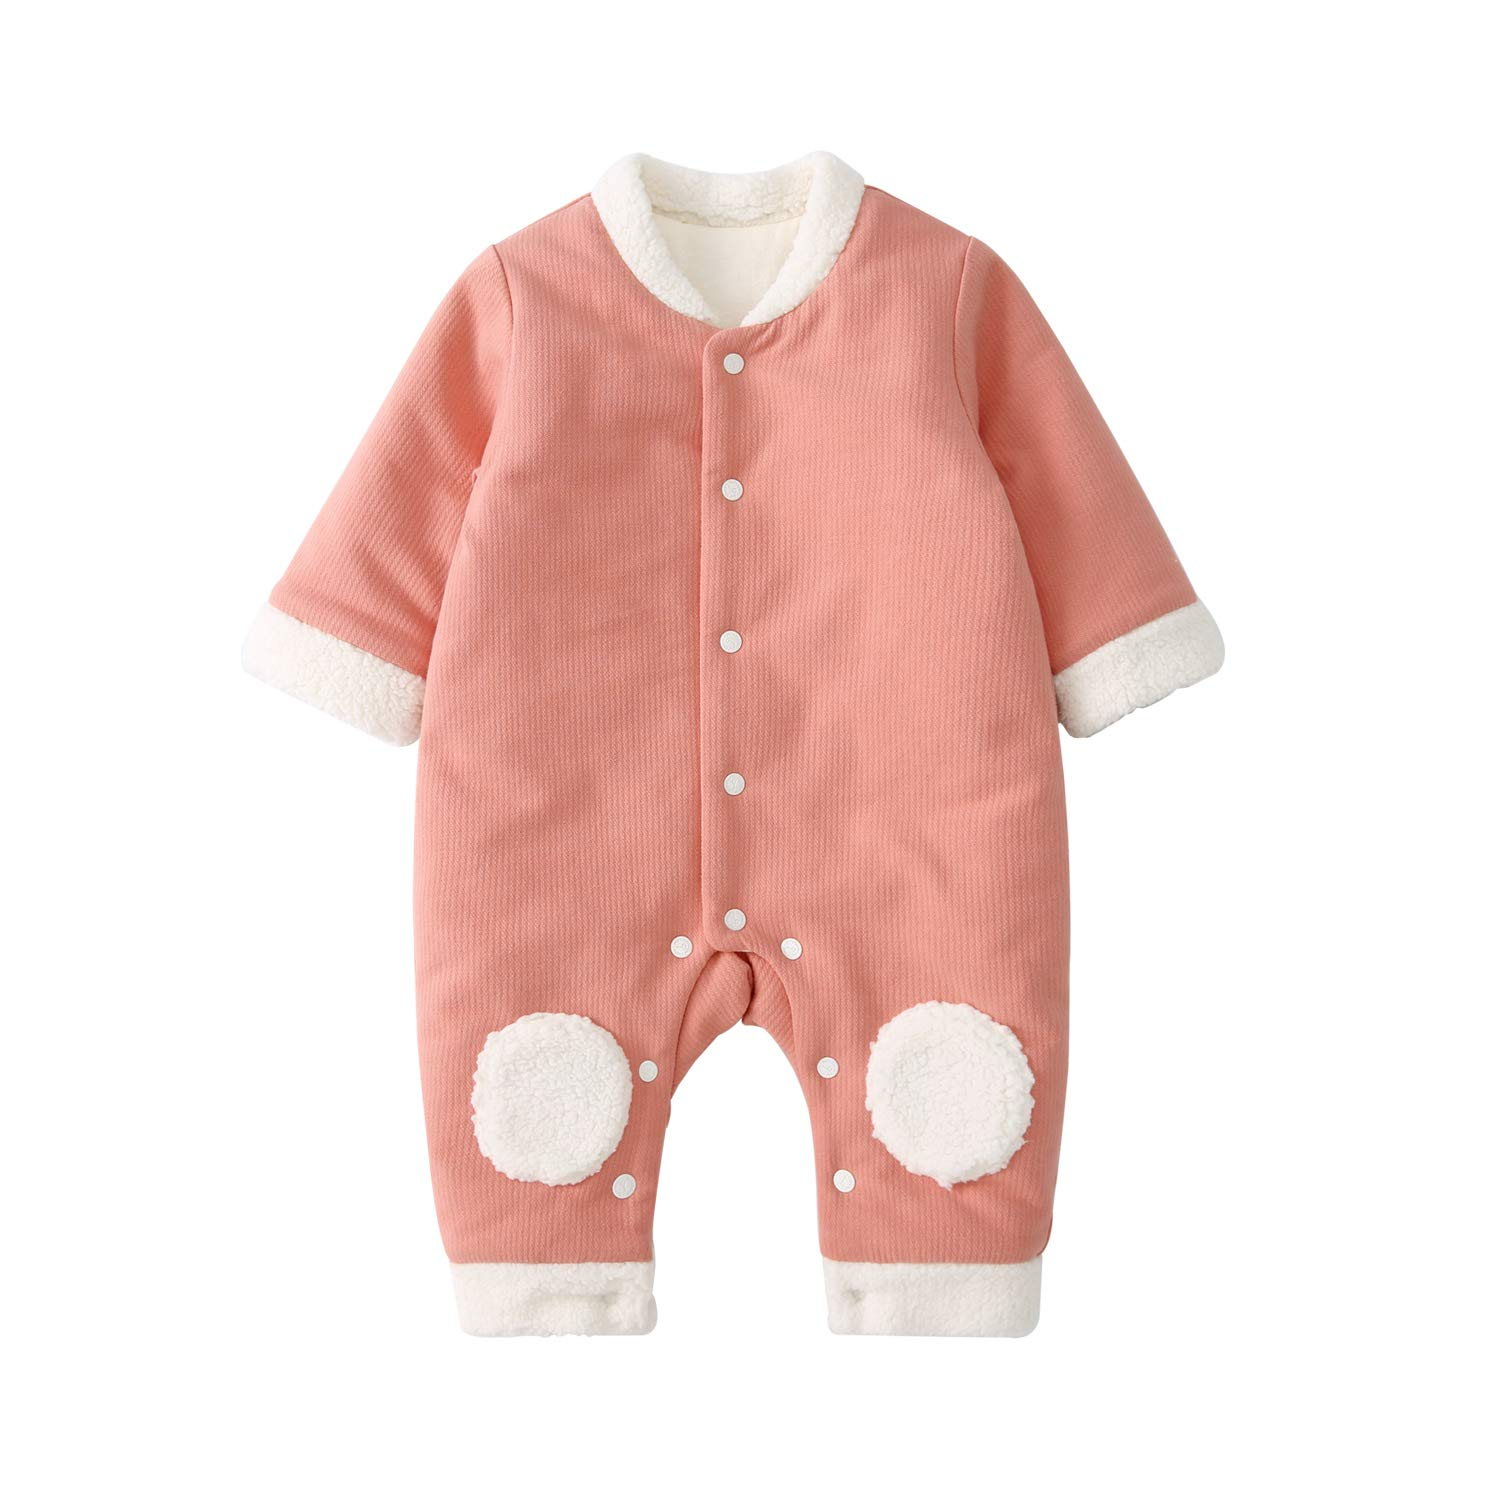 pureborn Unisex Baby Cute Cartoon Quilted Cotton Lined Winter Jumpsuit 0-24 Months